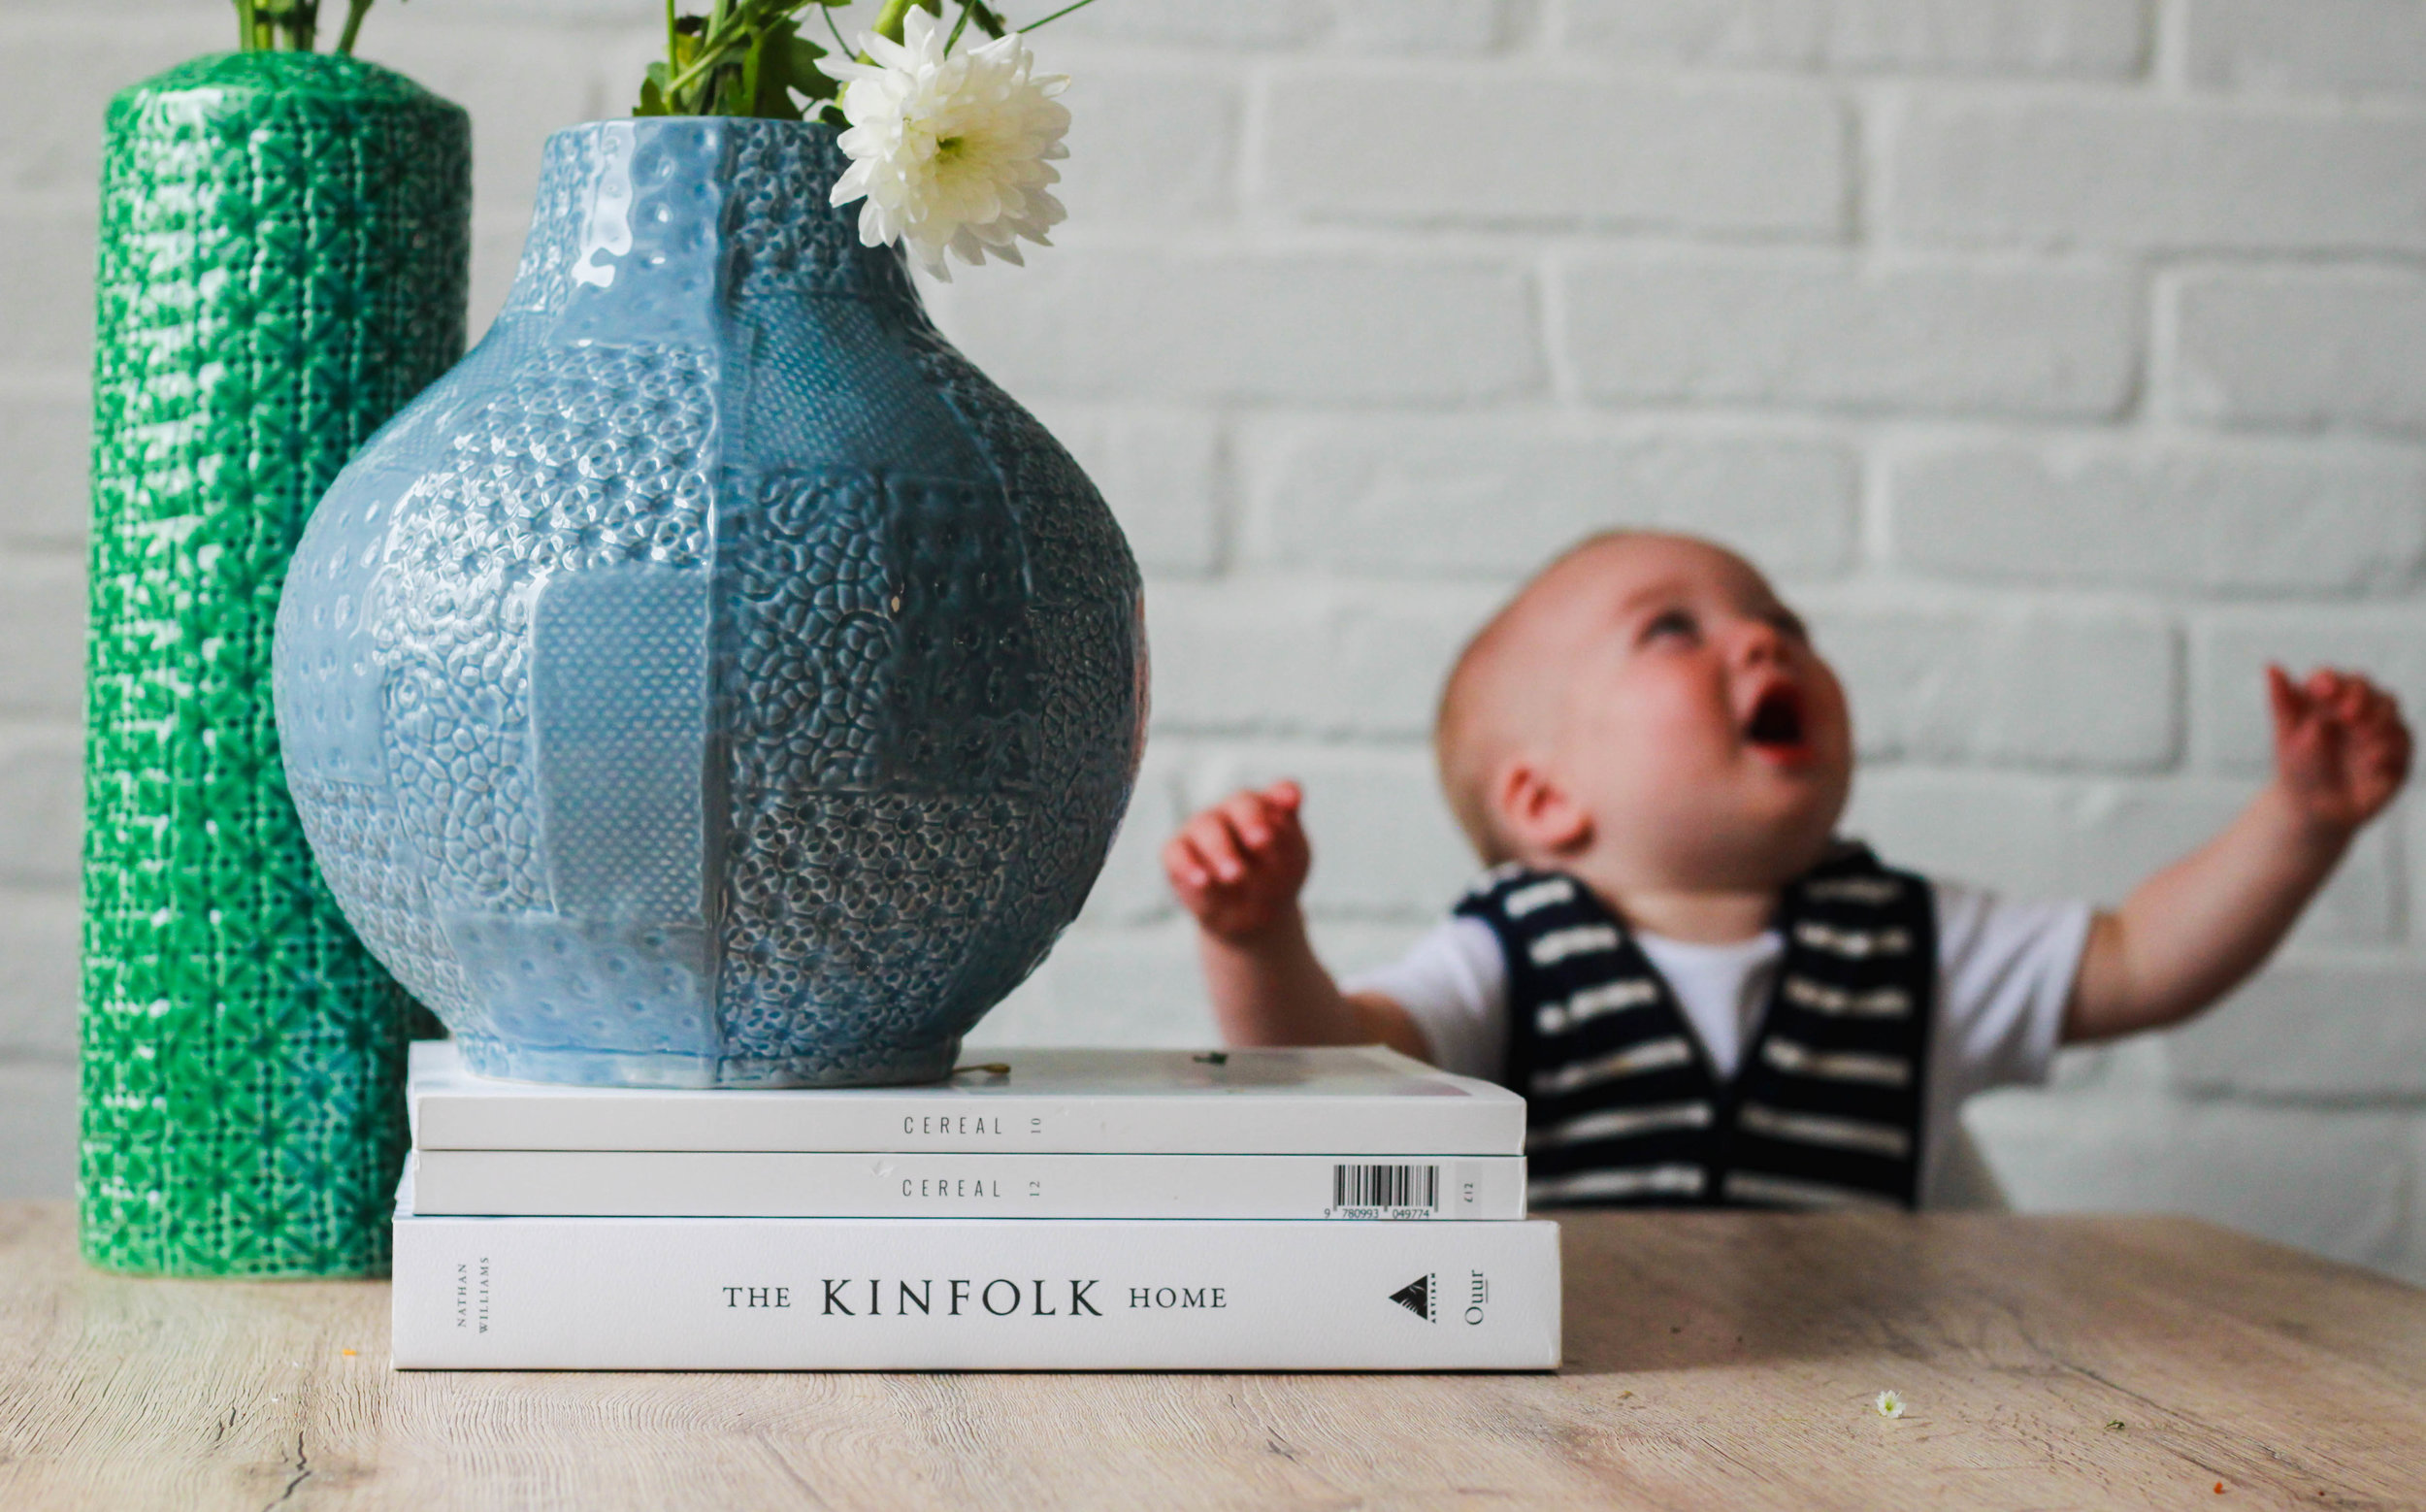 Baby laughing in noms high chair at table with plants